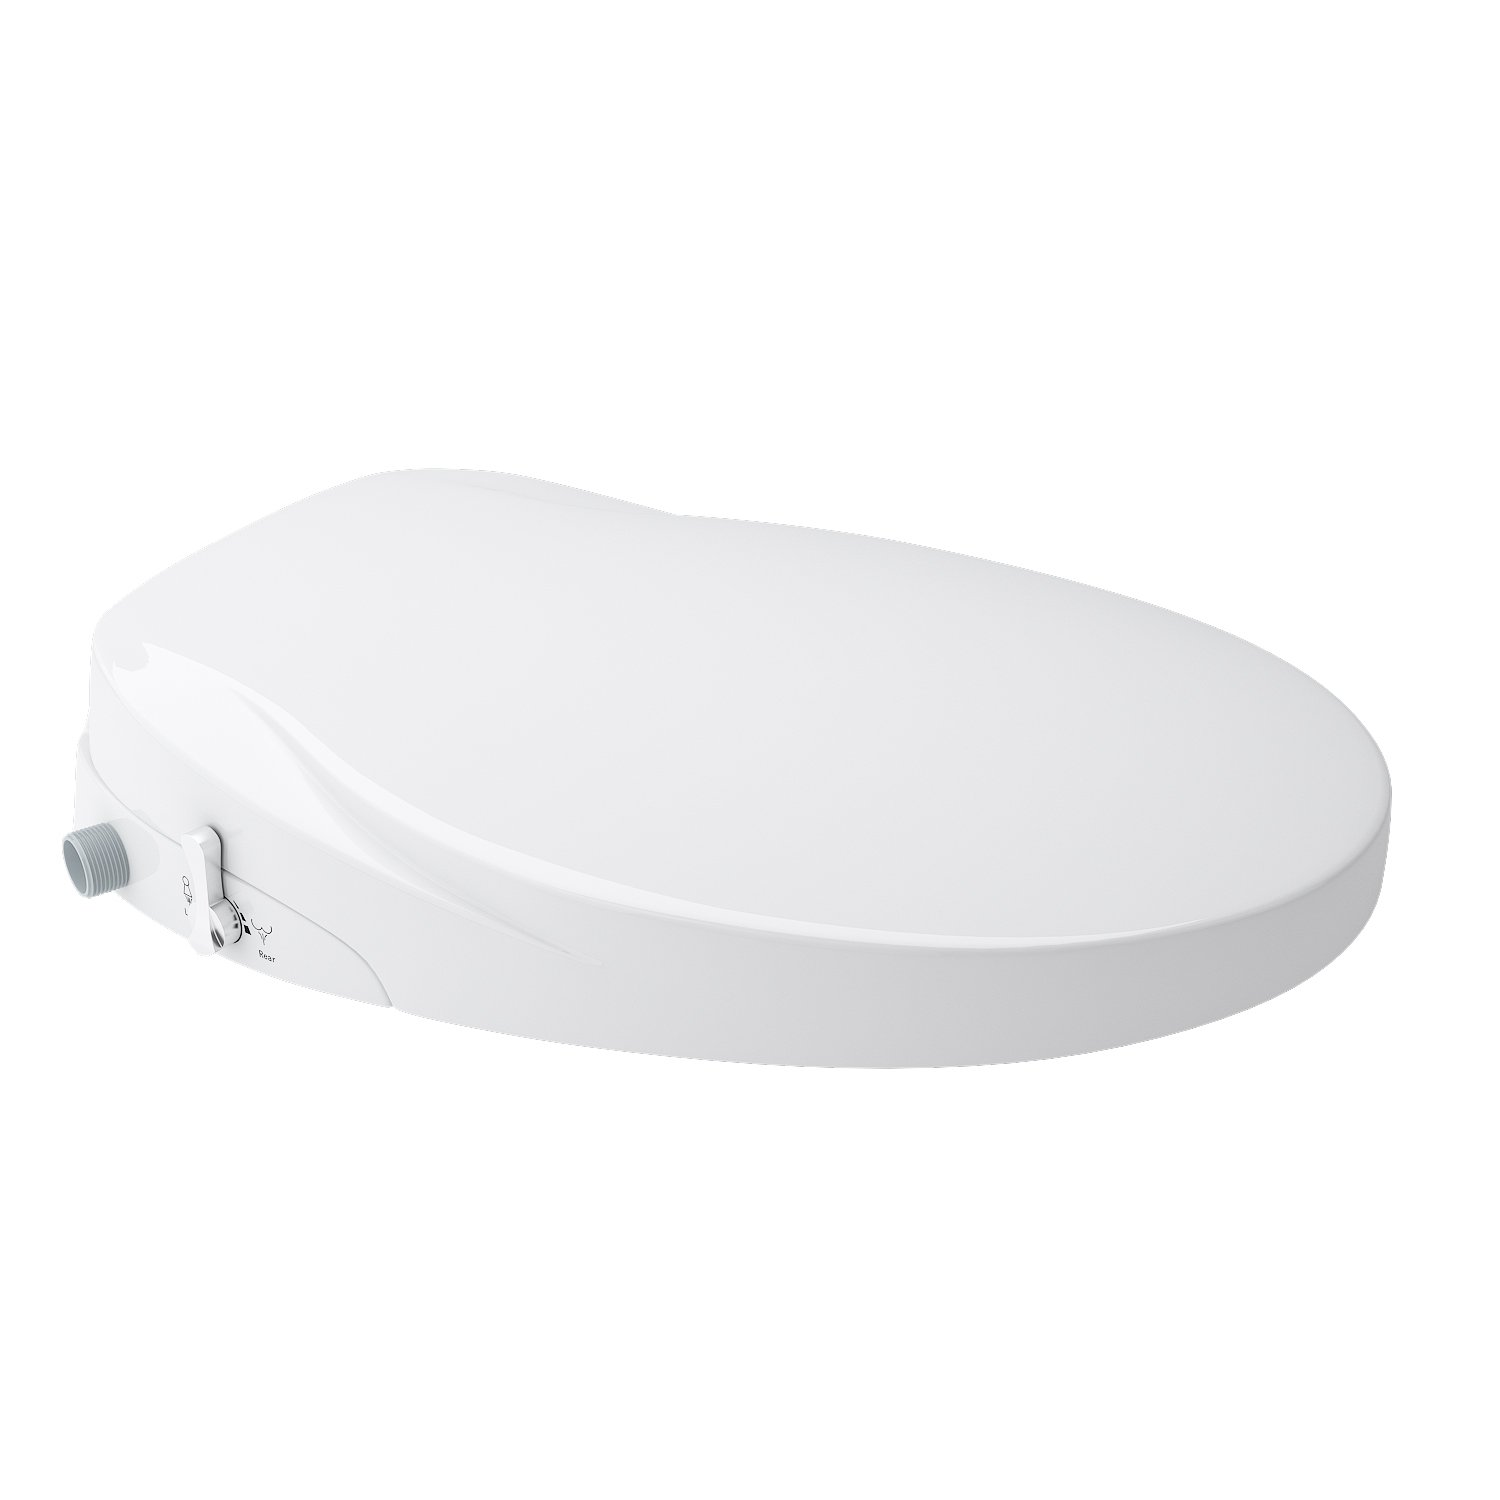 Homdox Bidet Smart Toilet Seat in Round Self Cleaning - Dual Nozzle Has Posterior and Female Wash - Fresh Water- Non-Electric Mechanical Bidet Toilet Attachment with Adjustable Water Pressure White